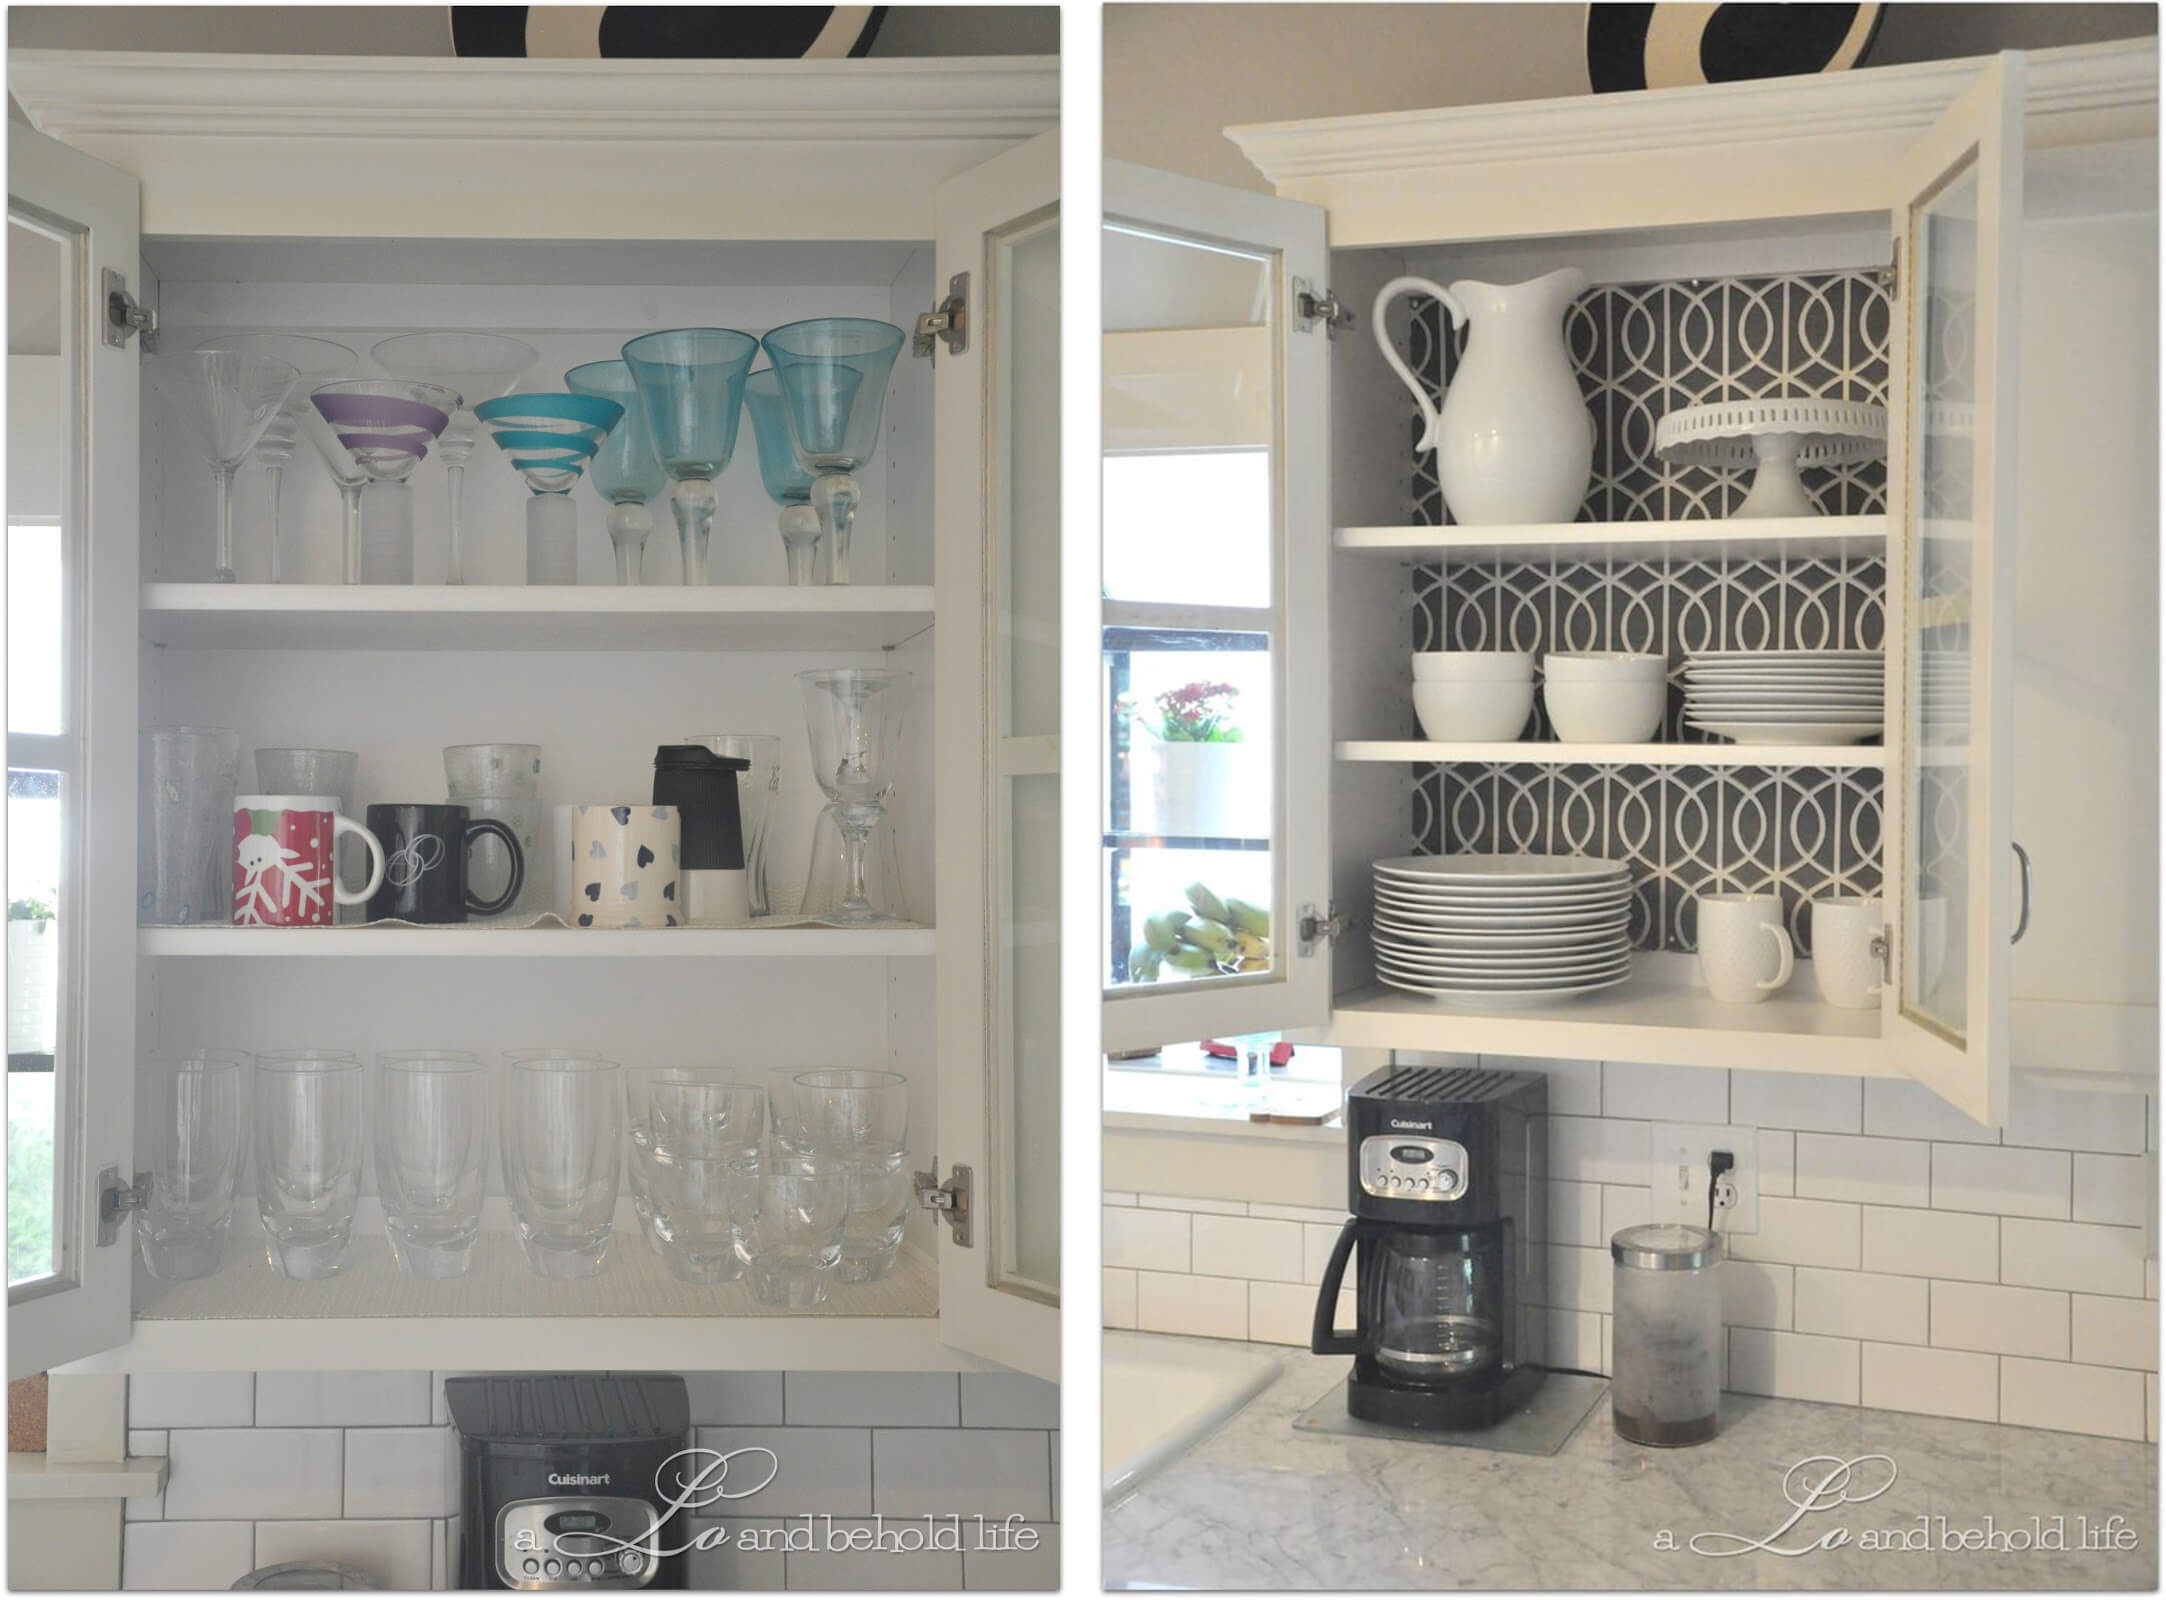 Remodelling Projects and Ideas for Cabinets